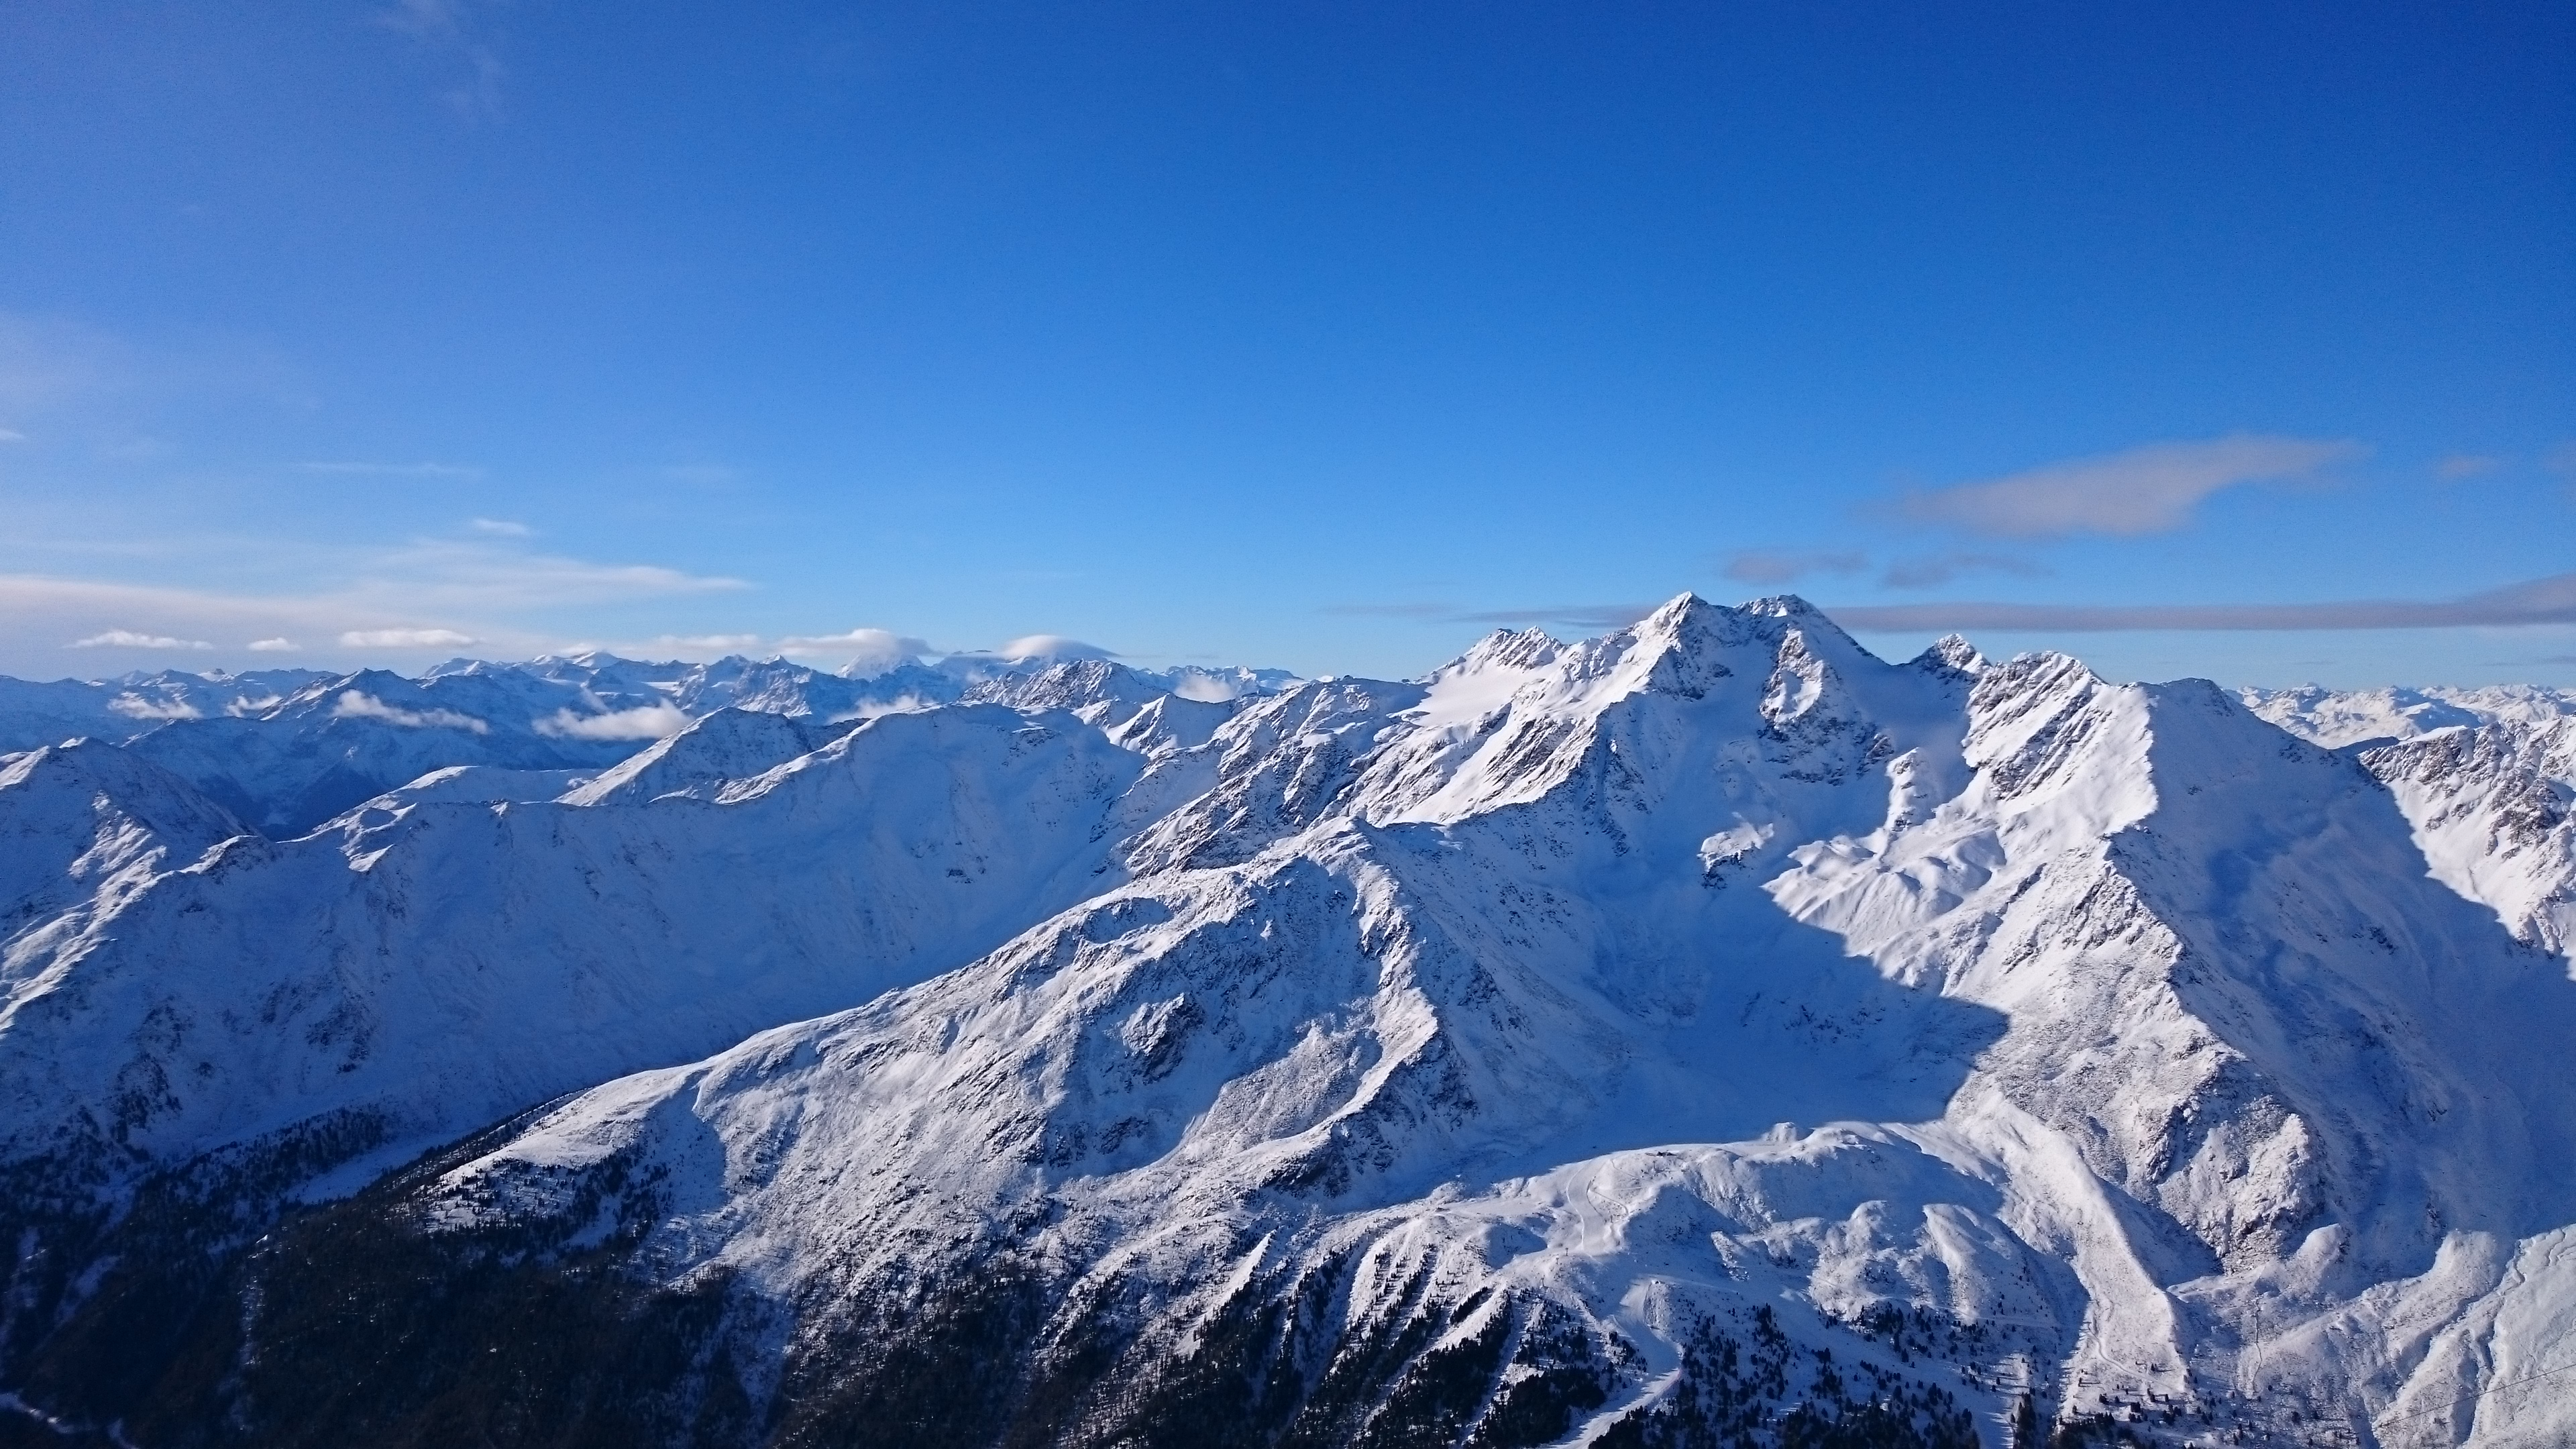 The first journey this year – Skiing holidays in the alps!